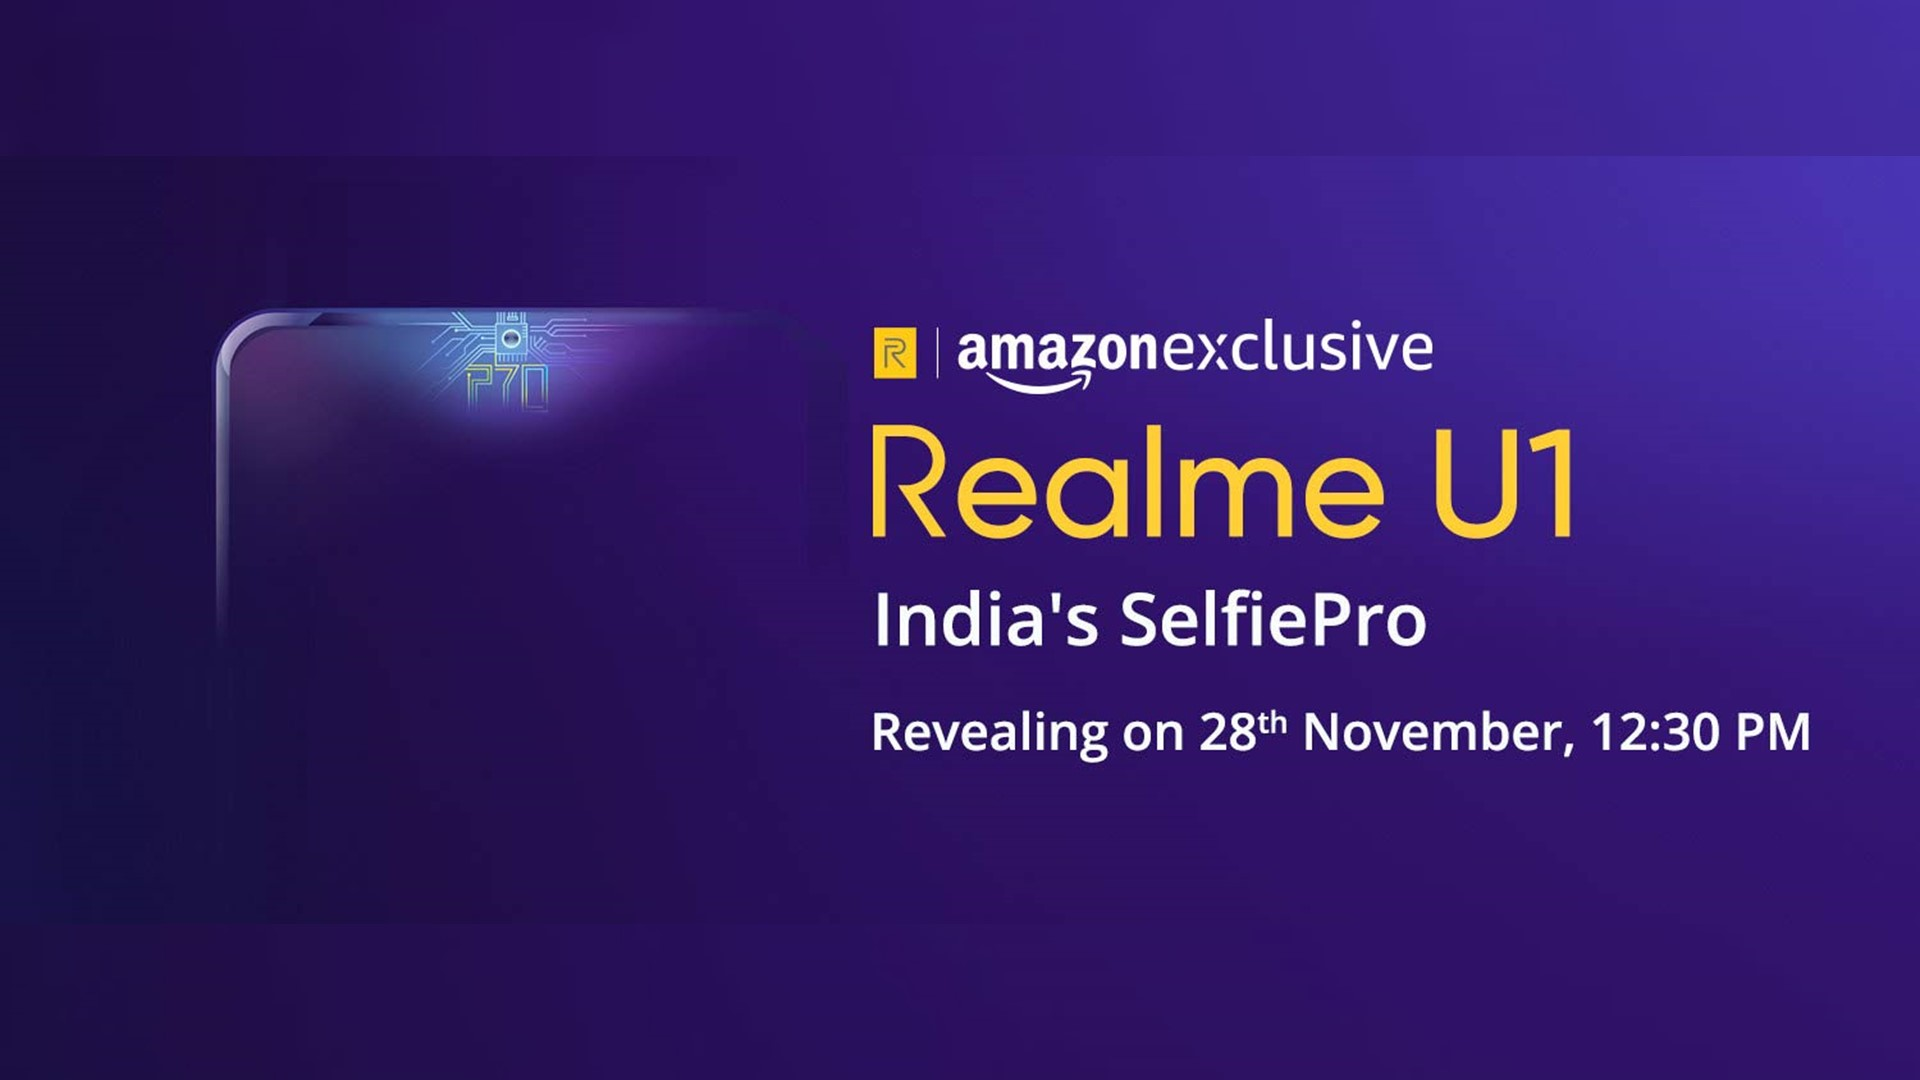 Realme U1 allegedly scores better than Redmi Note 6 Pro and Honor 8X